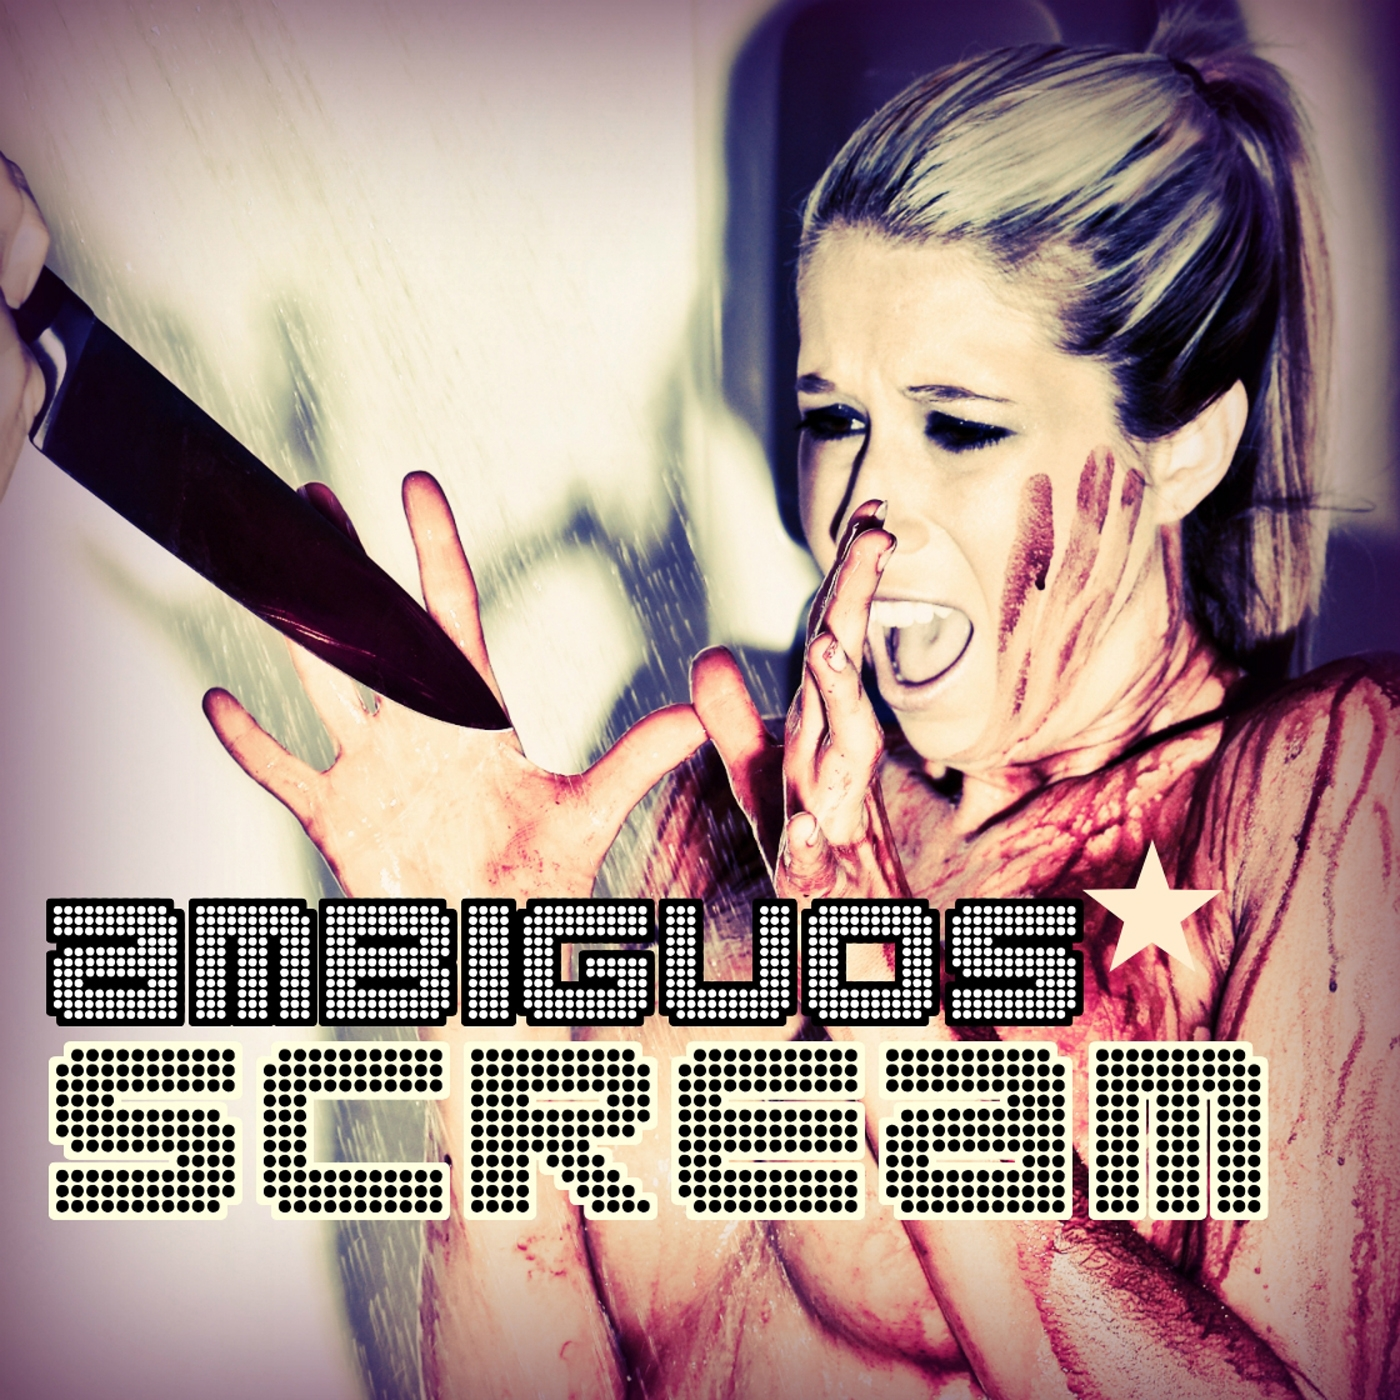 Ambiguos - Scream (Extended Mix)